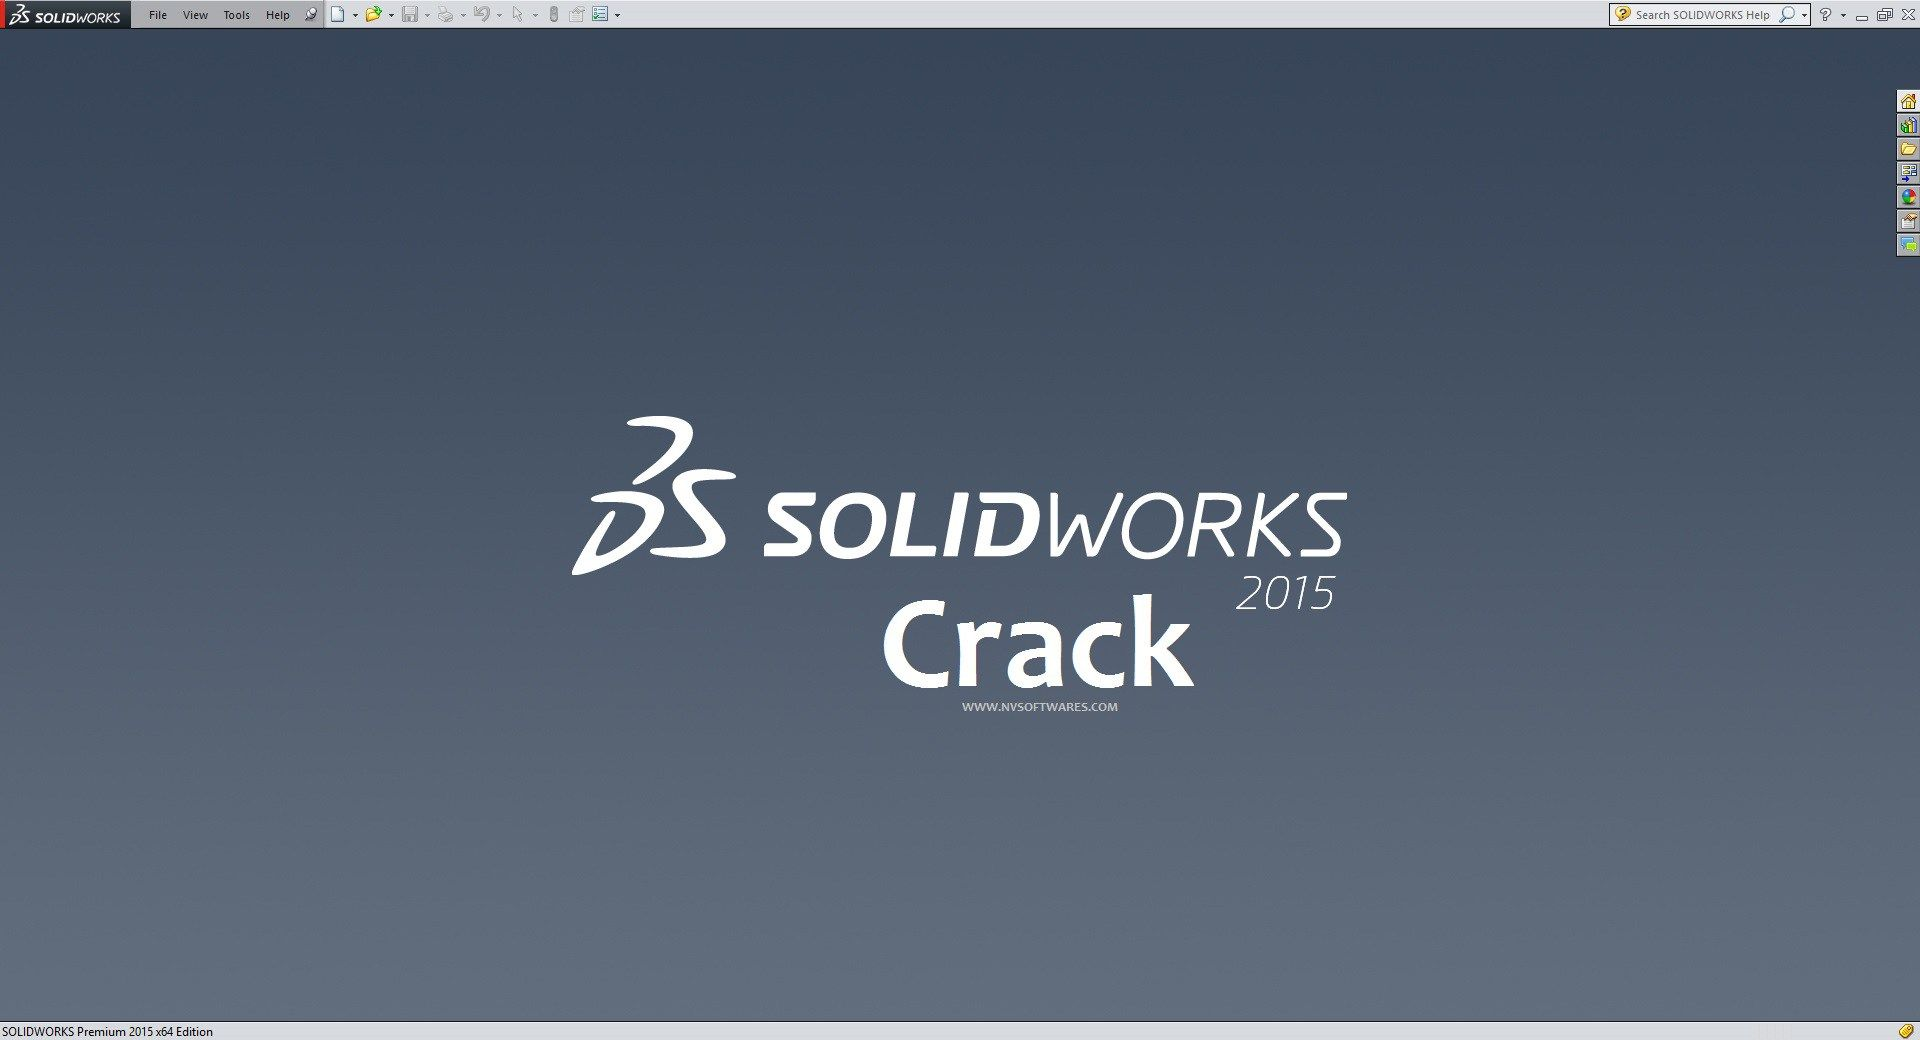 solidworks 2014 free download with crack 32 bit